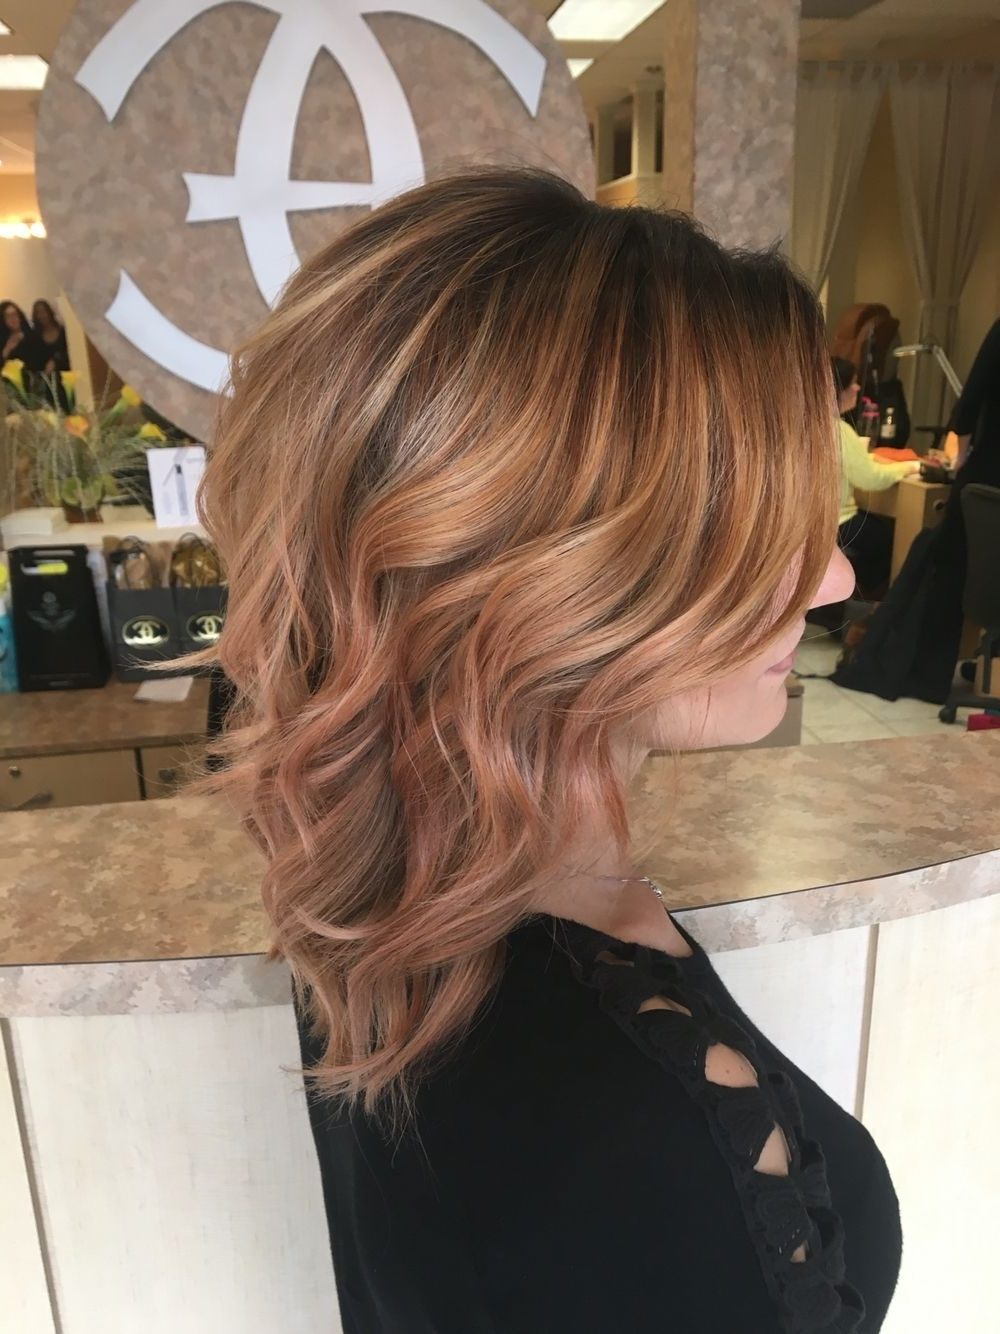 2018 Light Copper Hairstyles With Blonde Babylights Intended For Hand Painted Rose Gold Golden Copper Blonde Balayage Highlights On (View 4 of 20)